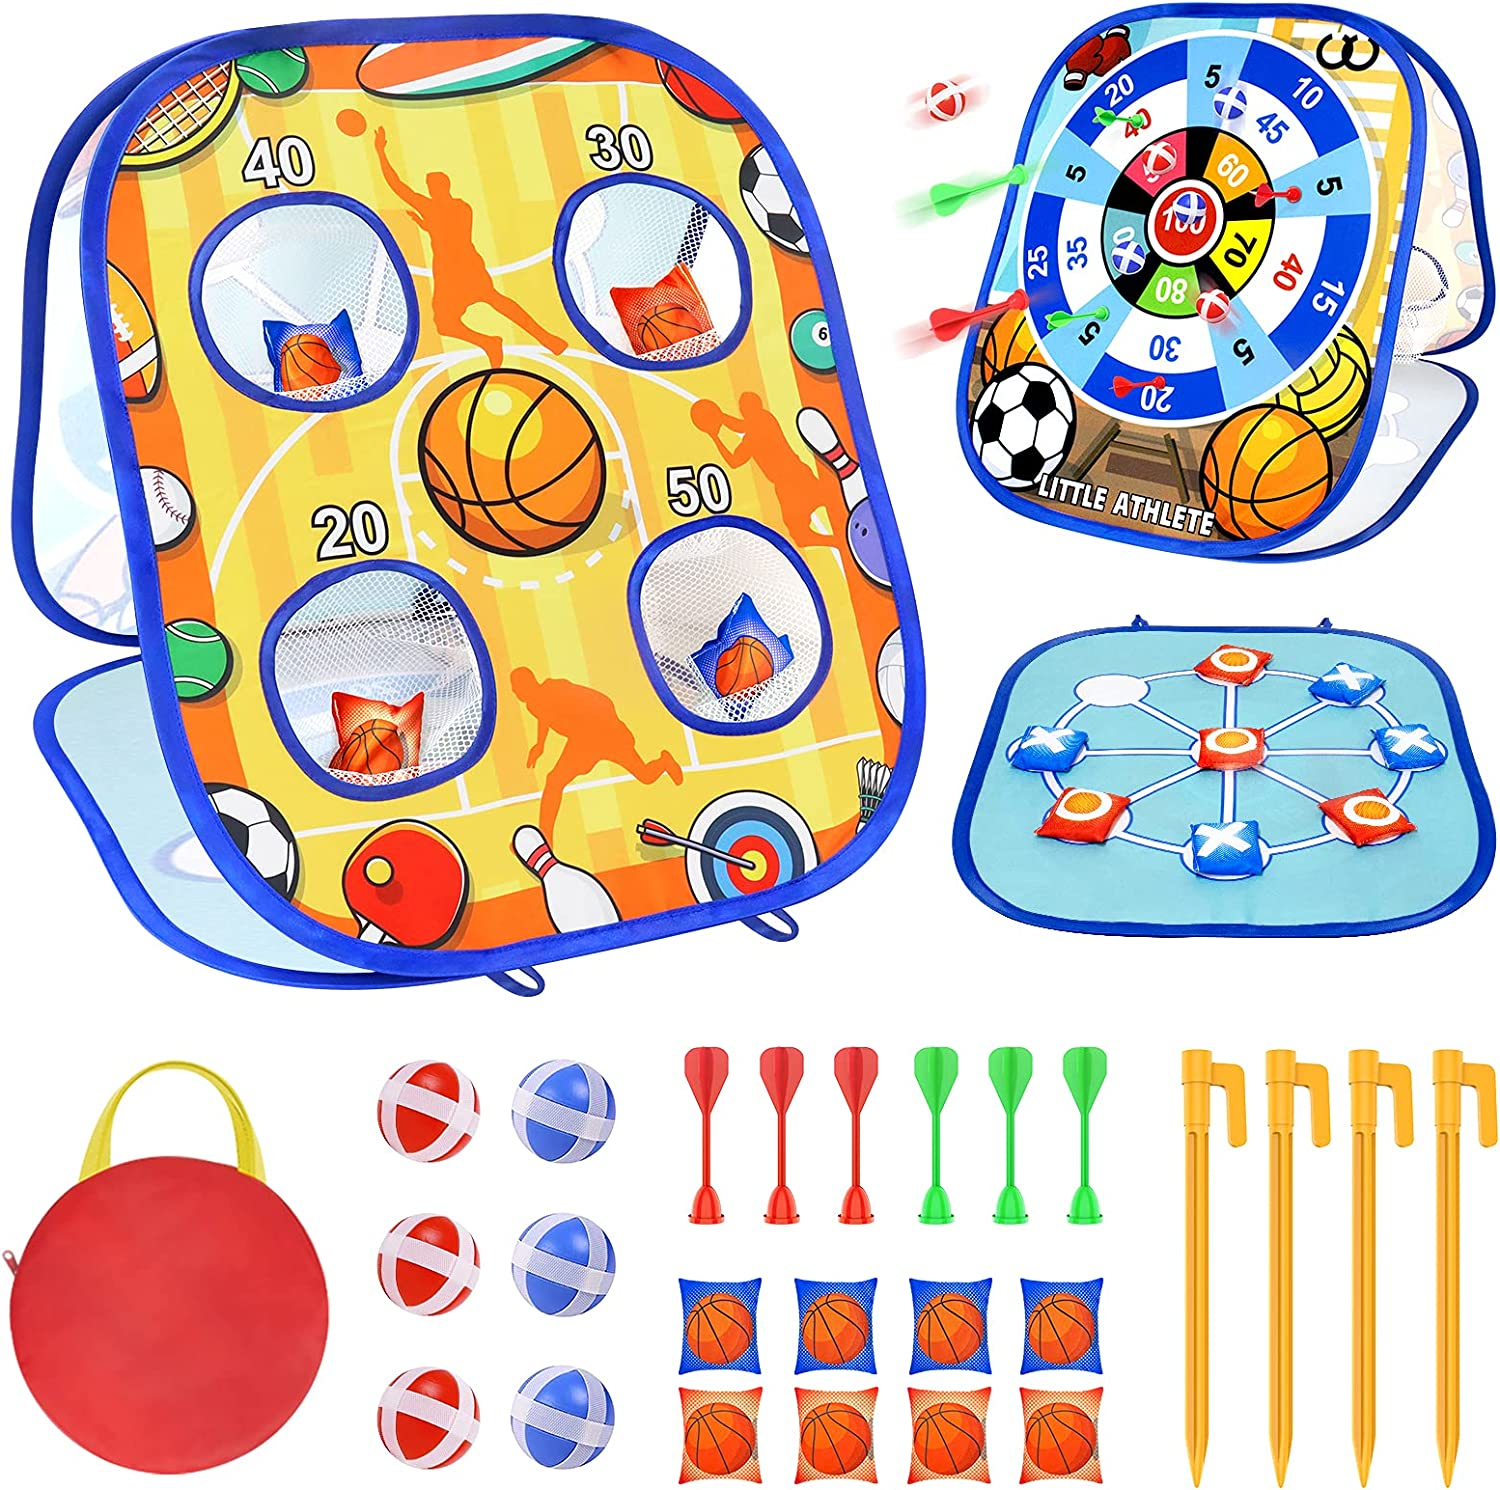 Fermoved Collapsible Bean Bag Toss Popular brand in the world Game Kids C for Toddlers Store Fun